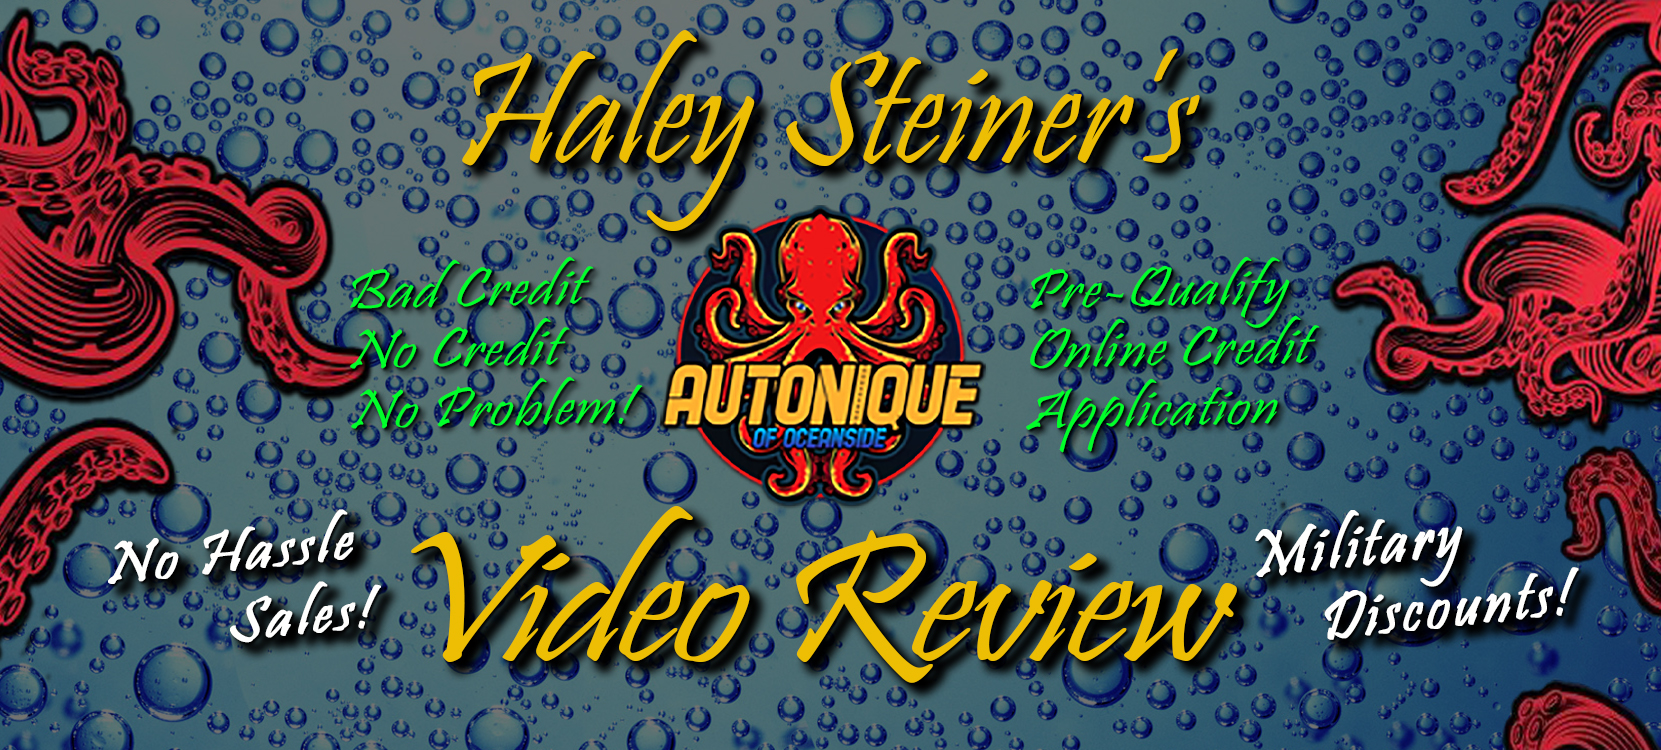 Customer Video Review provided by Haley S. about Autonique's Used Car Auto Dealership of Oceanside for people interested in Pre-Owned Used Cars around the Oceanside, California area.